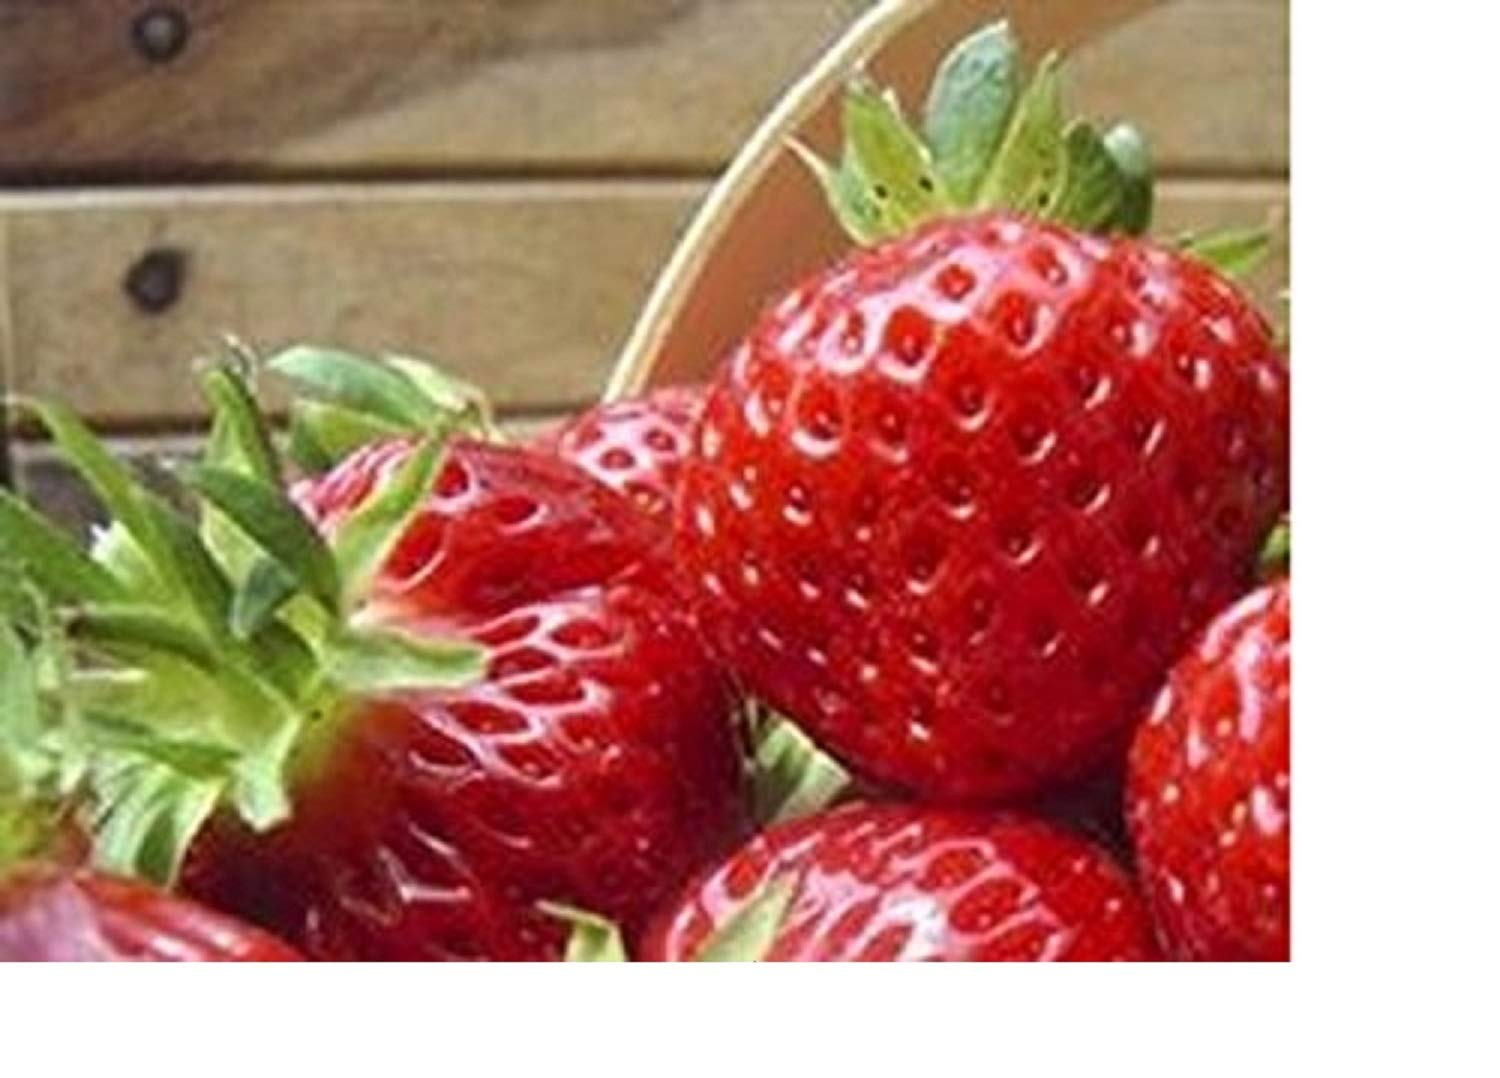 20 x Strawberry Honeoye Mid Fruit Plants - Grow You're Own Strawberries - BARE ROOT Fruit Bush Strawberry